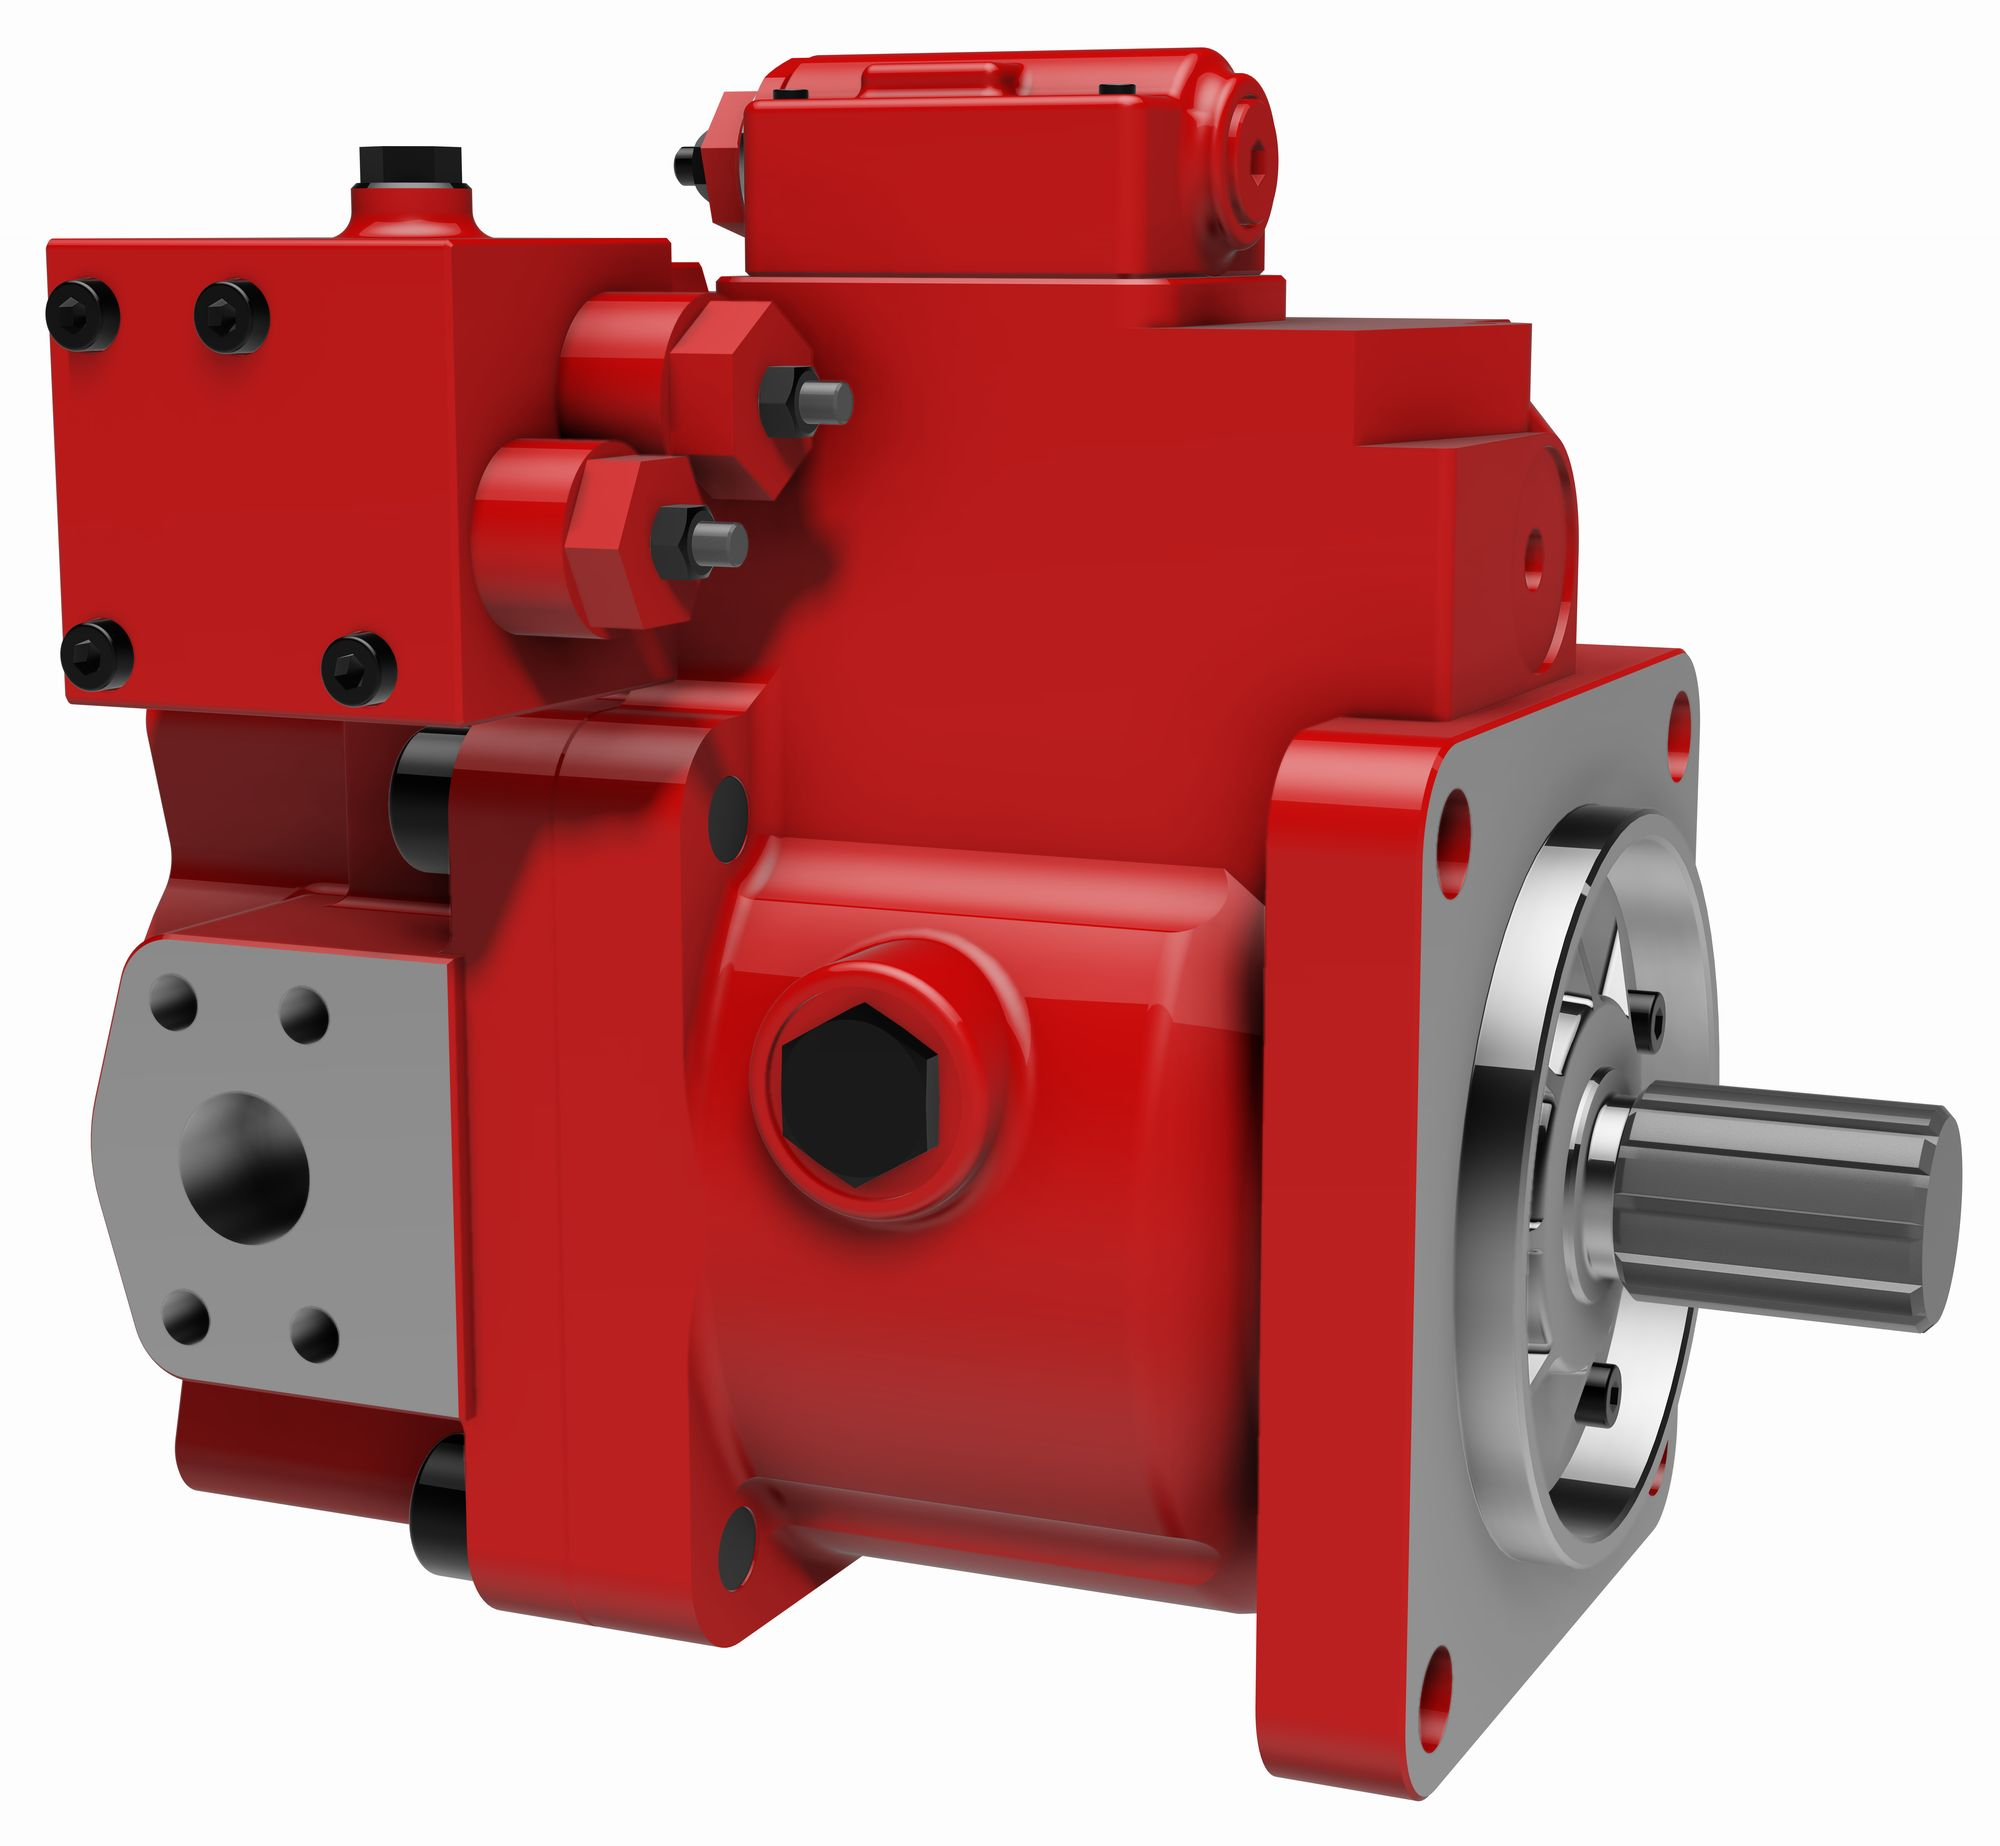 Ideas For More Efficient Hydraulics Power Transmission World Motion Control System Design Content From Pneumatics Interfluid Is Distributor Of Kawasaki In The Photo K3vl112 Pump